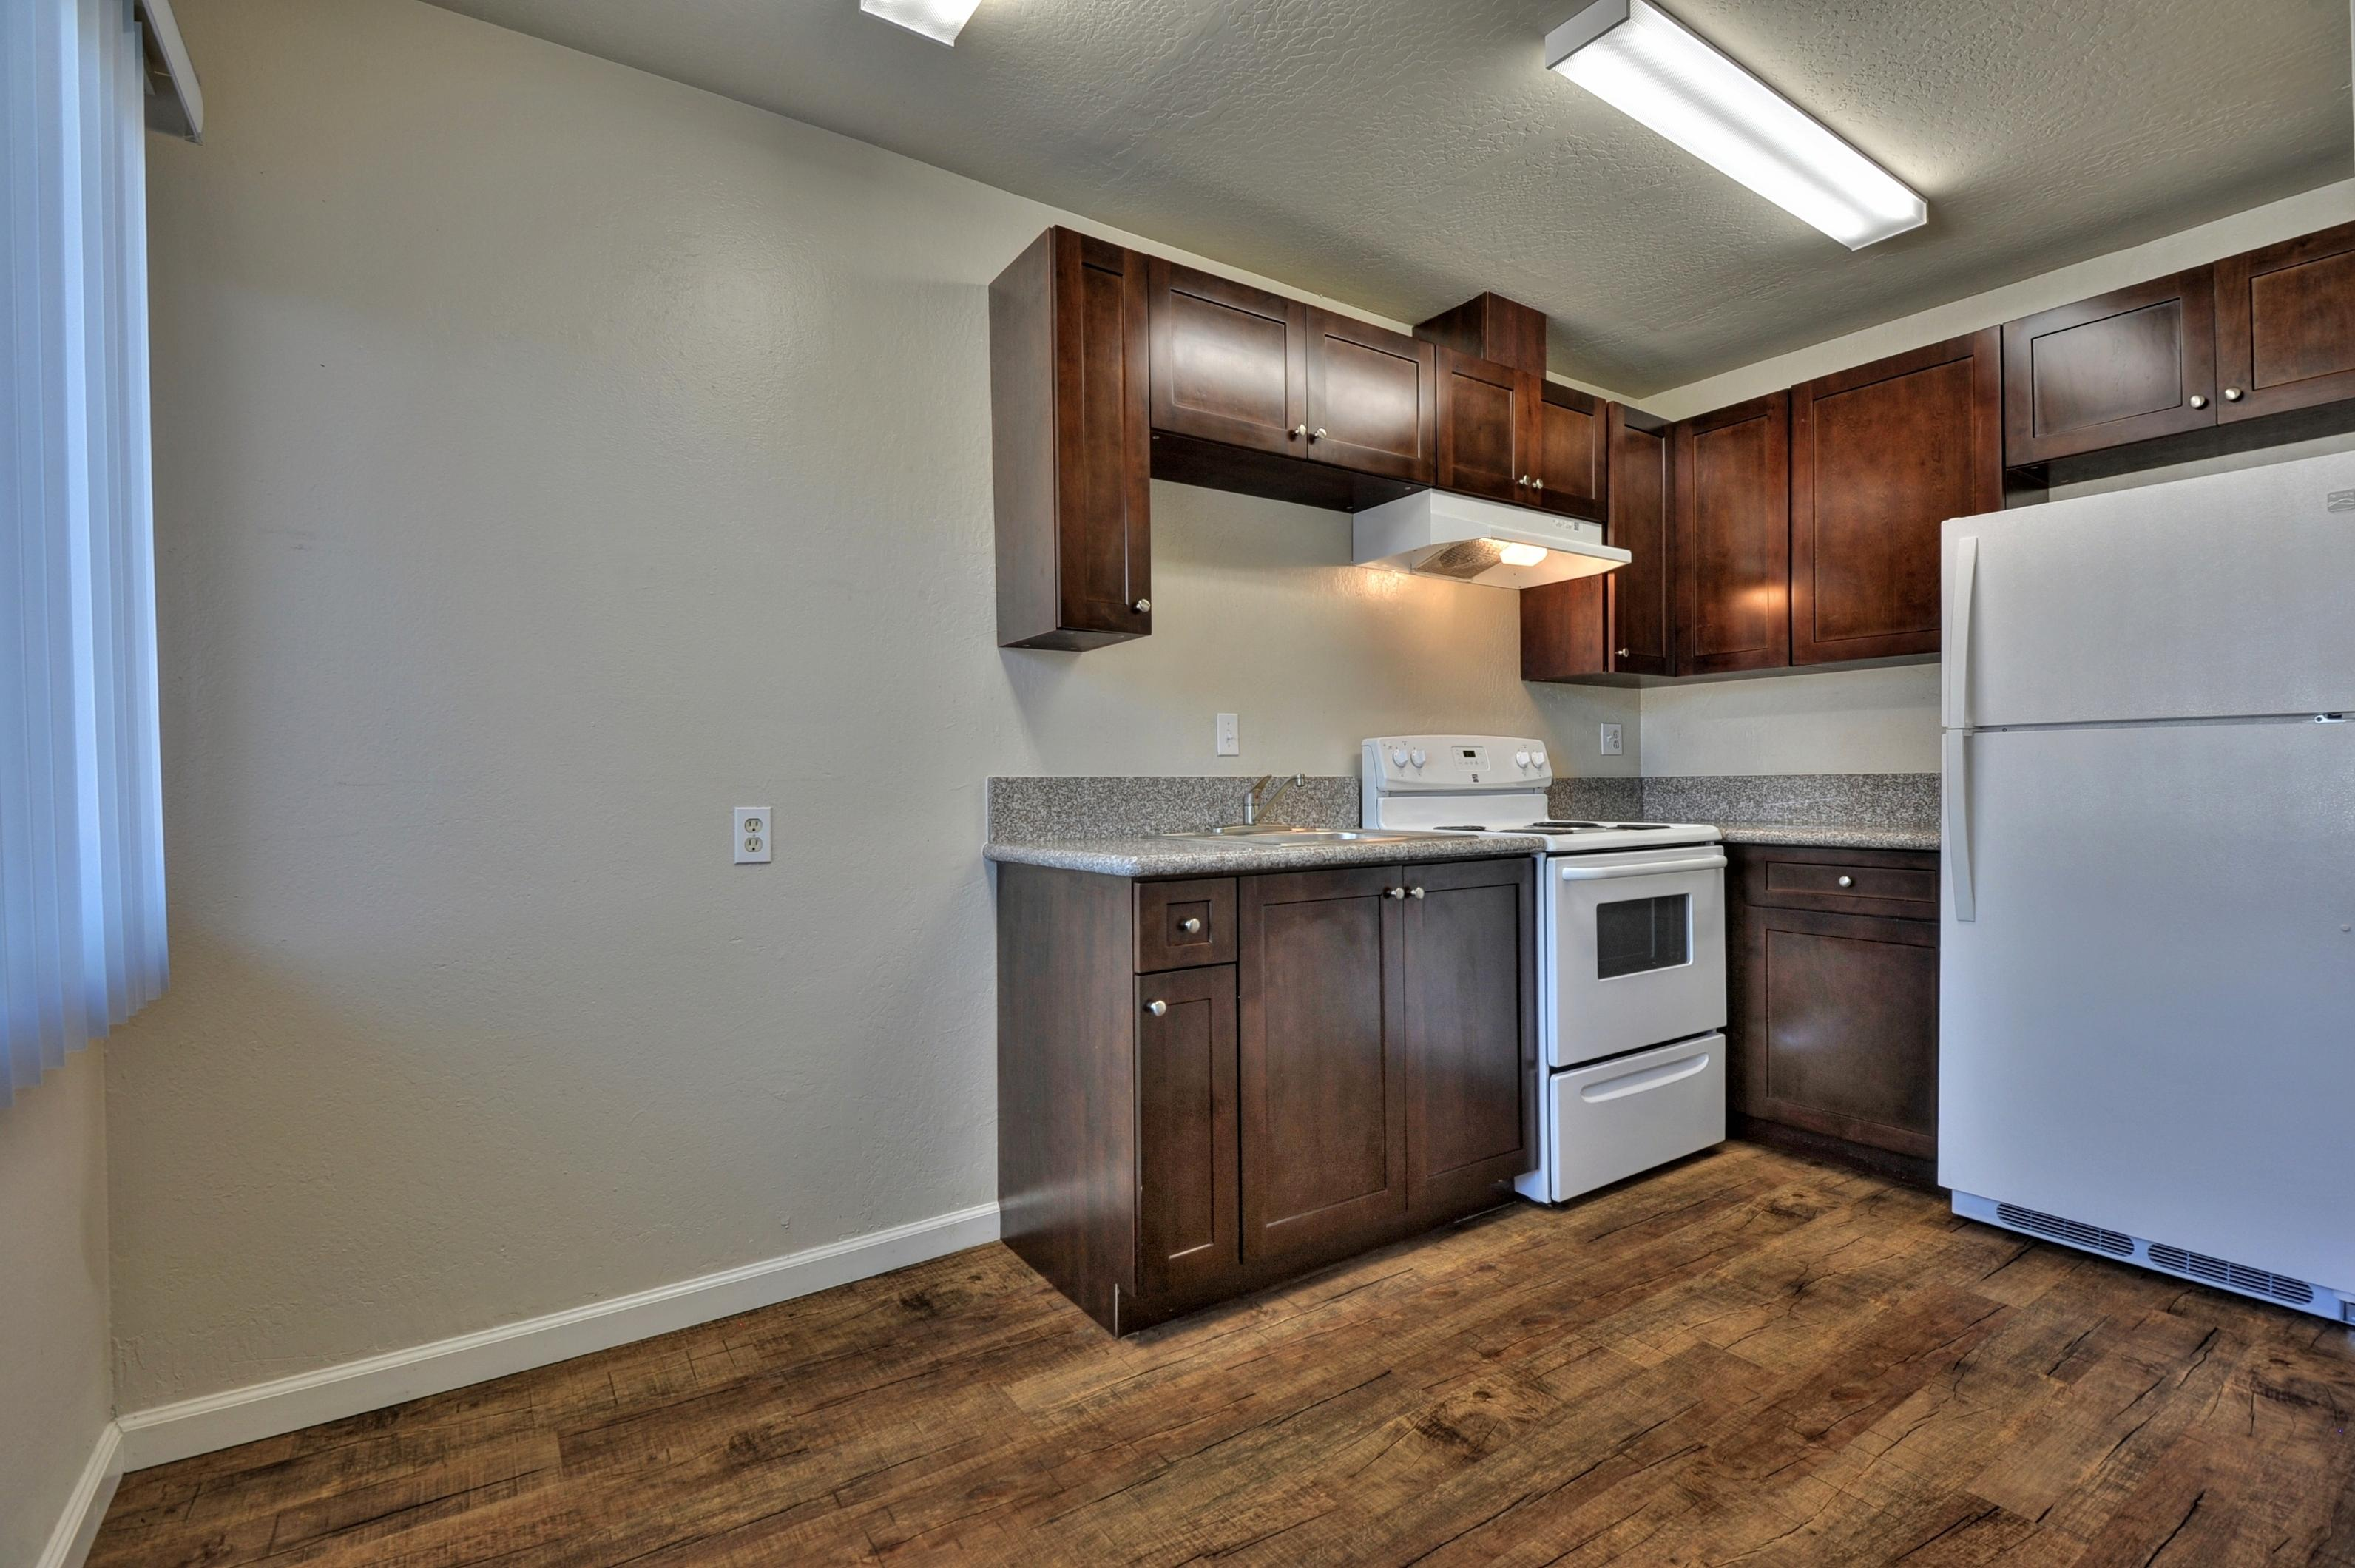 2738 Kollmar Dr San Jose CA-print-009-Bedroom Apt Kitchen Area-1500x999-300dpi.j